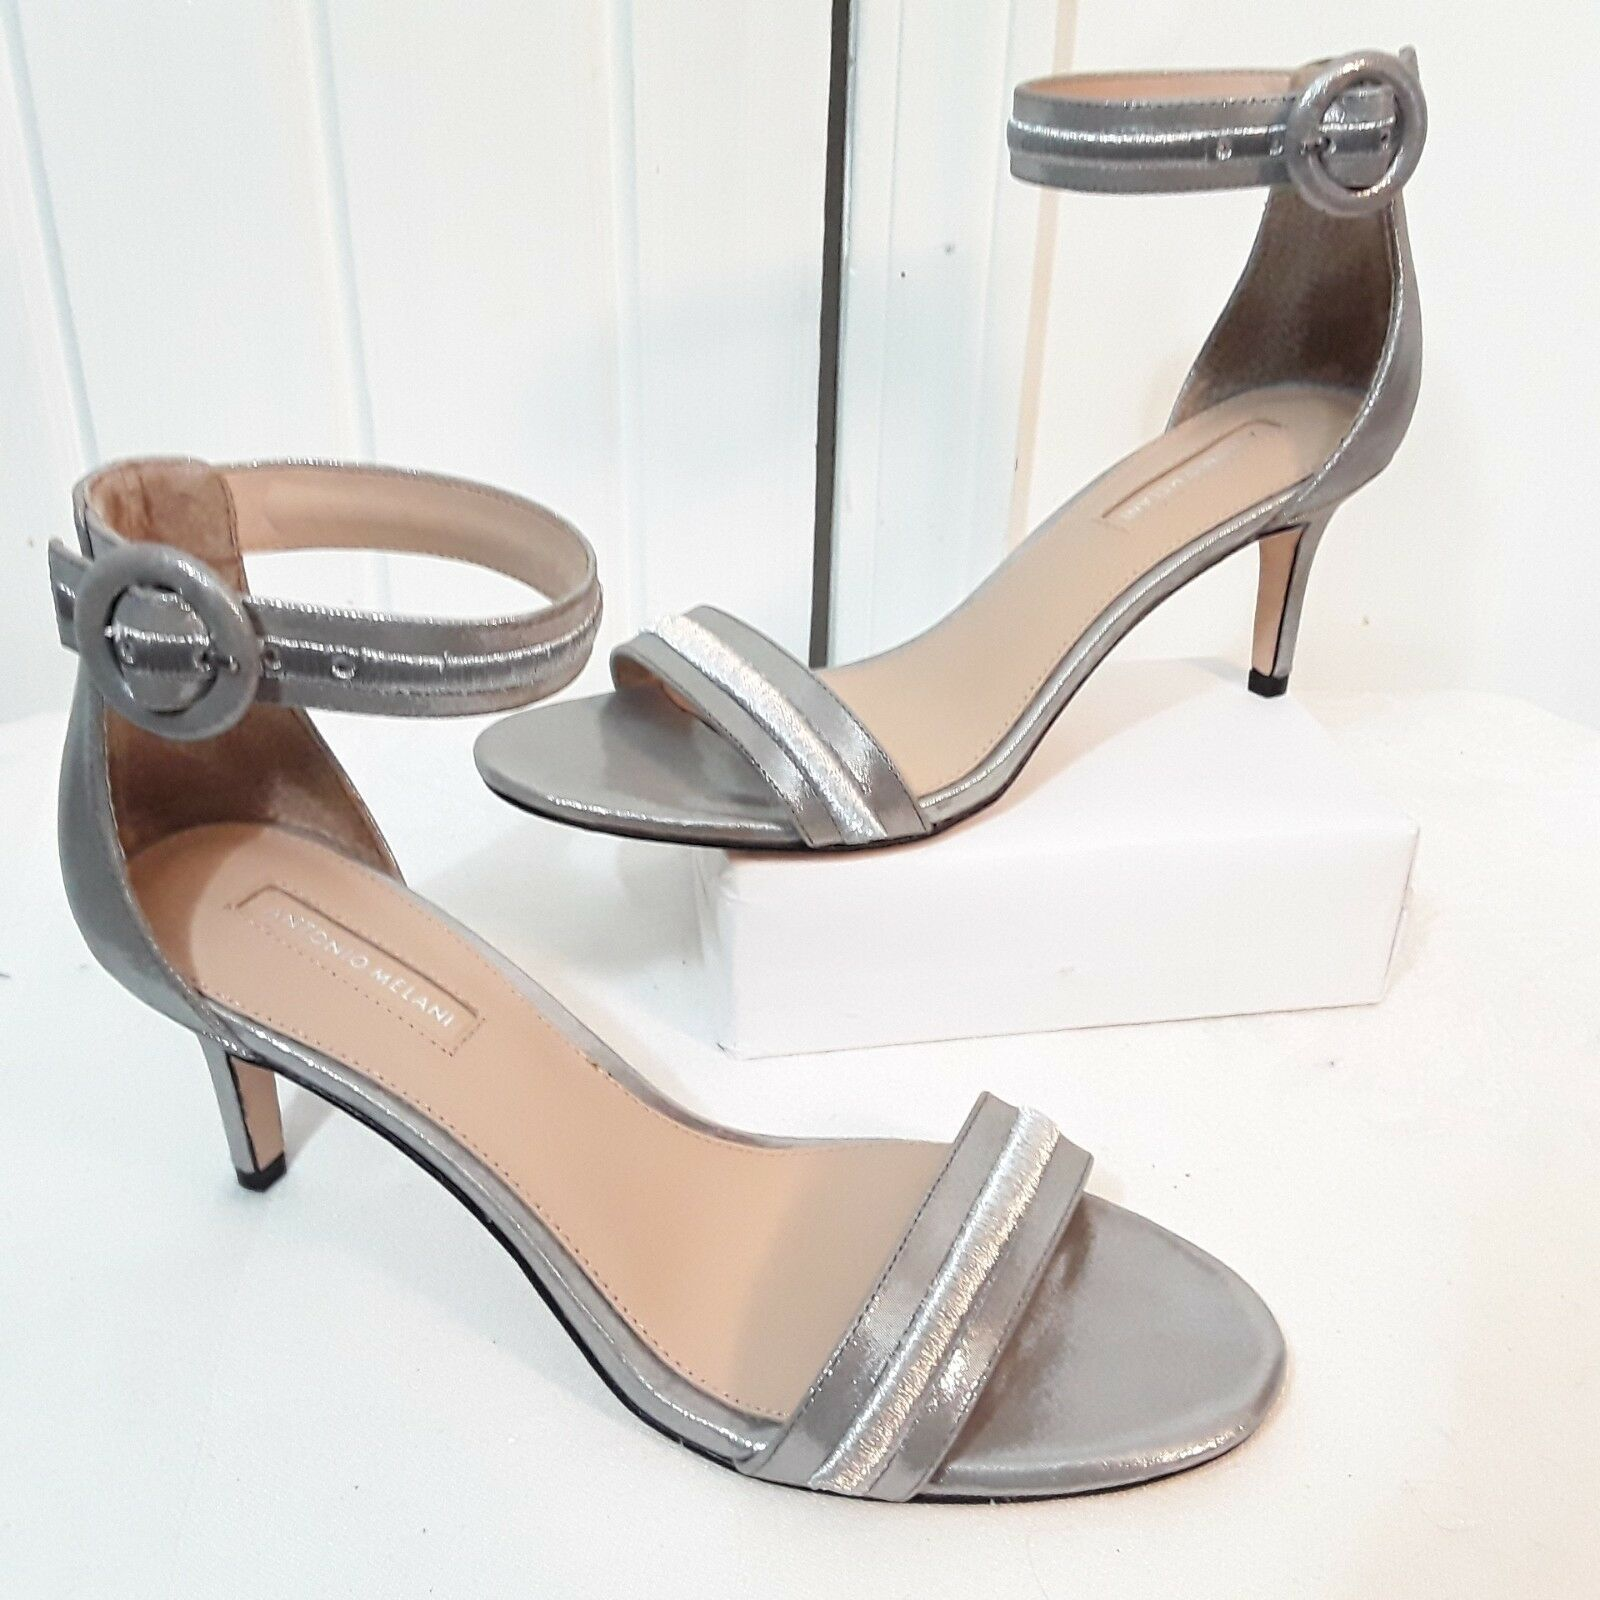 ANTONIO MELANI Womens SANDALS Sz 8 Silver High Heel Strappy Sandals